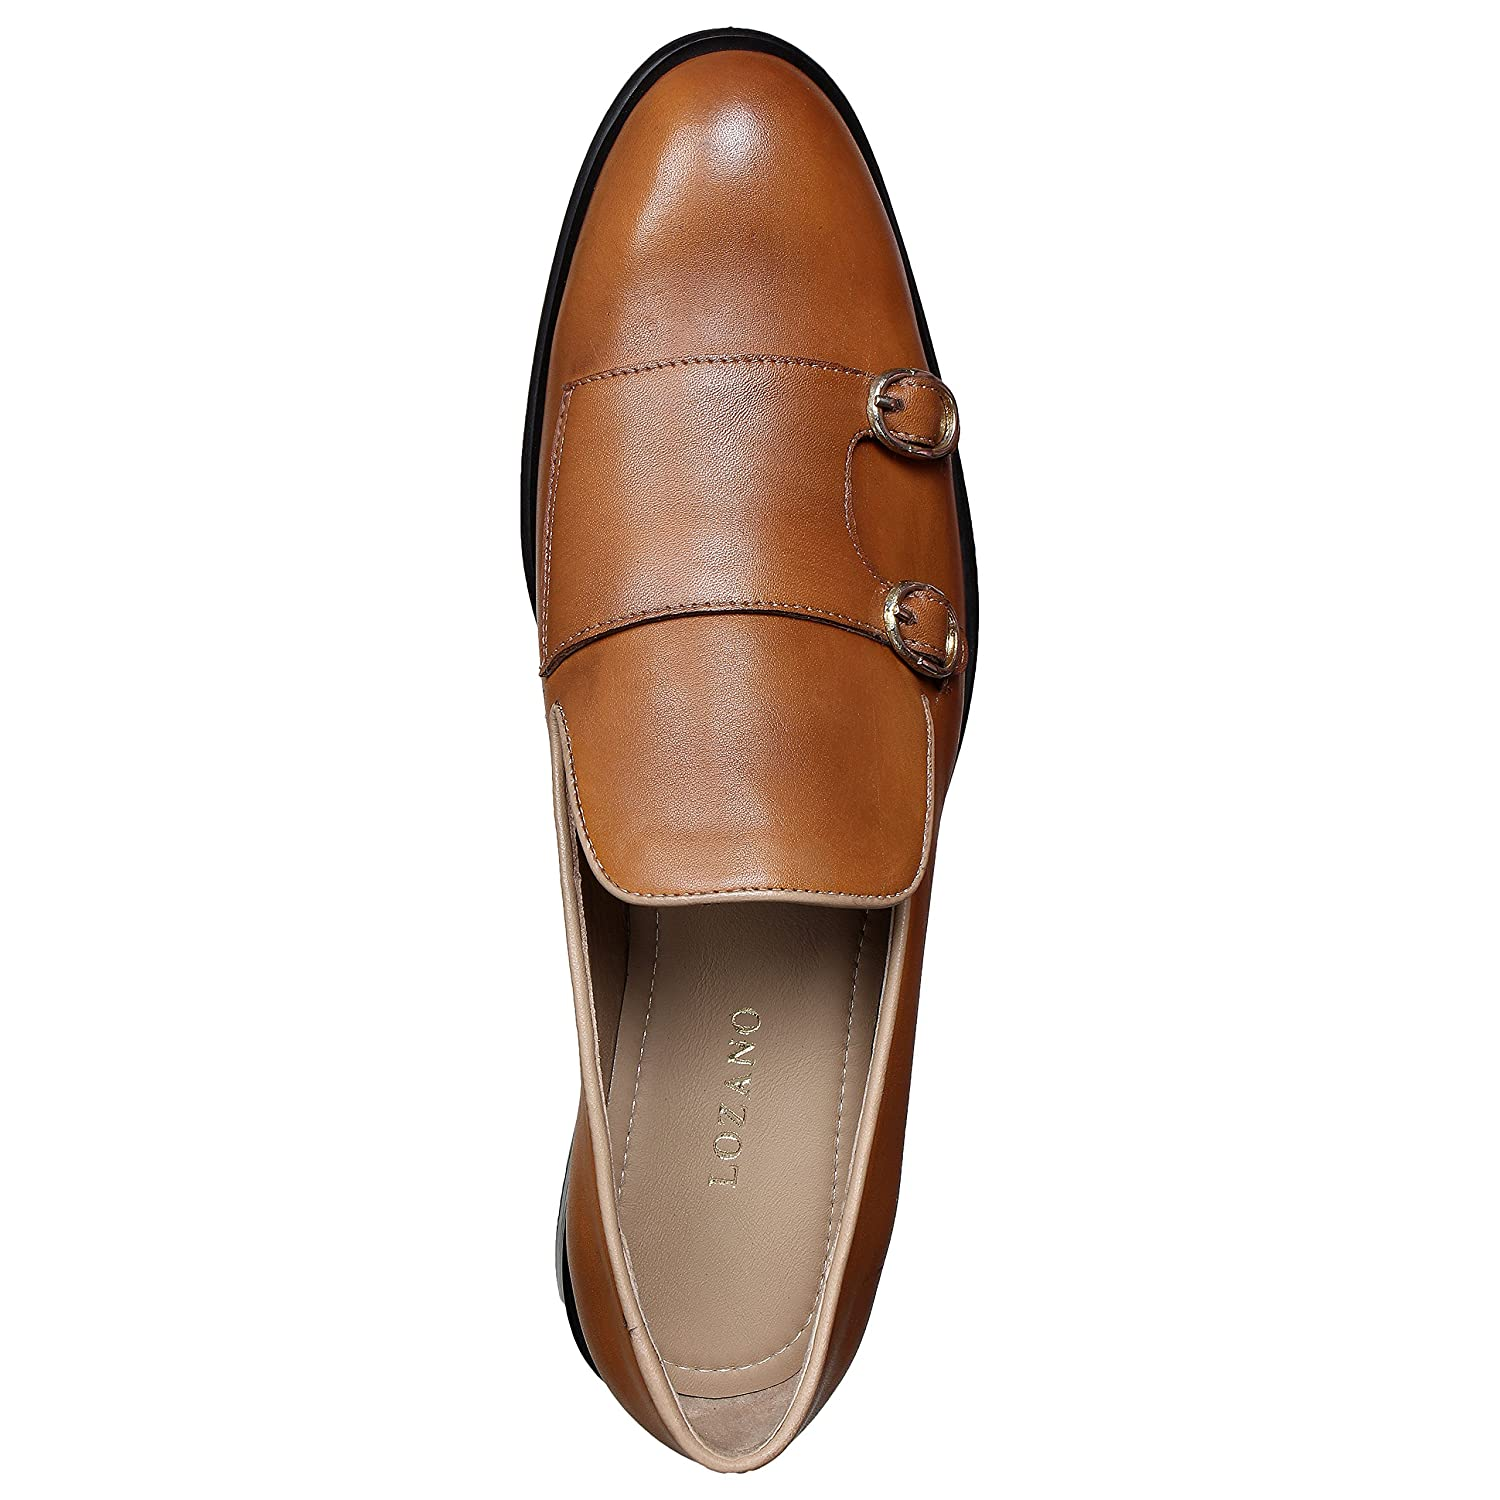 Lozano Tan leather monk strap slip ons Casual Shoes Tan Brown